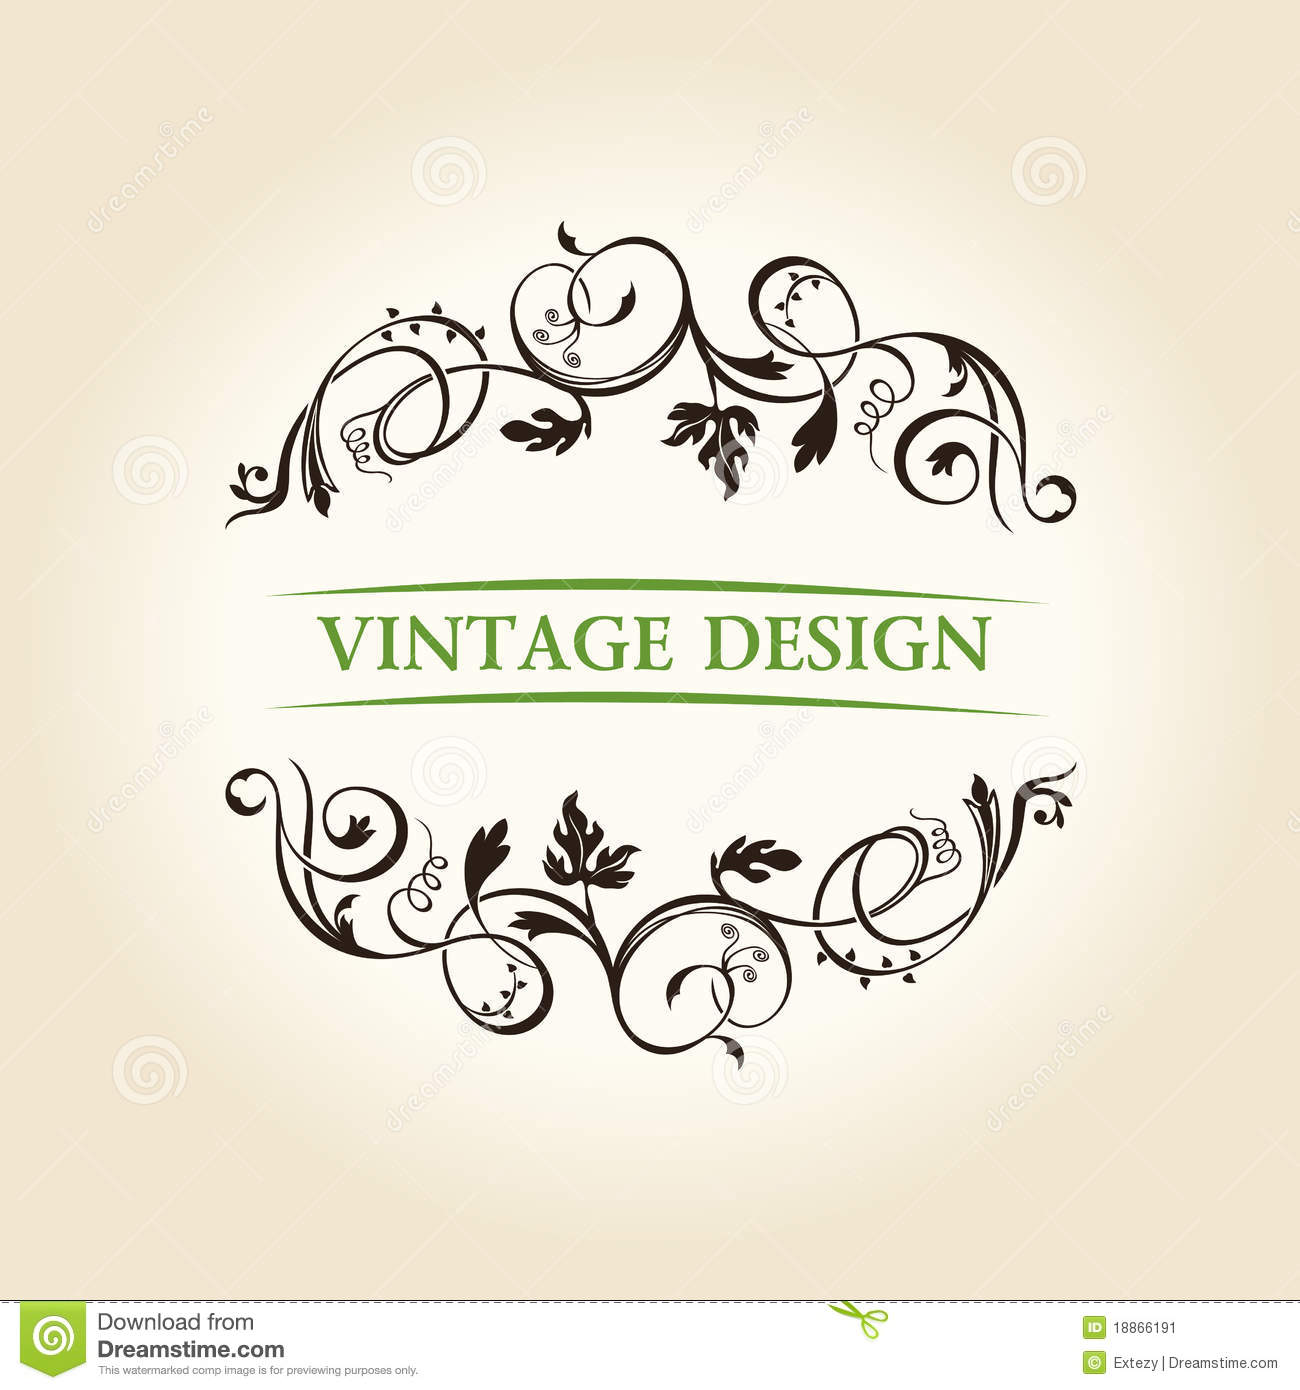 Vintage decor label ornament design emblem stock image for Art for decoration and ornamentation